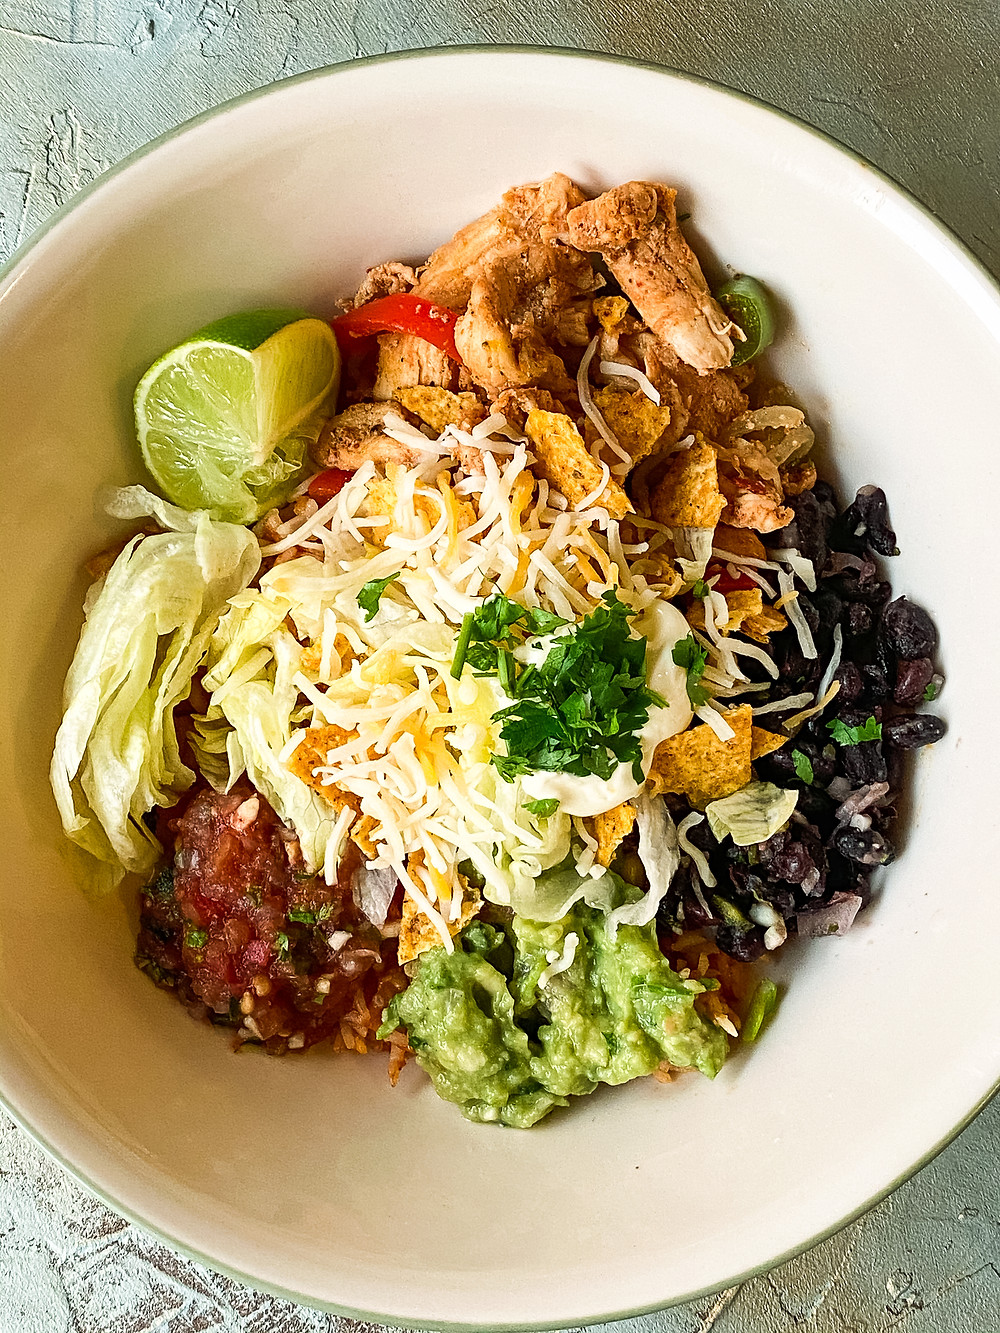 chicken burrito bowl consisting of Mexican rice, Chicken Fajita, Guacamole, Salsa, Black Bean salsa